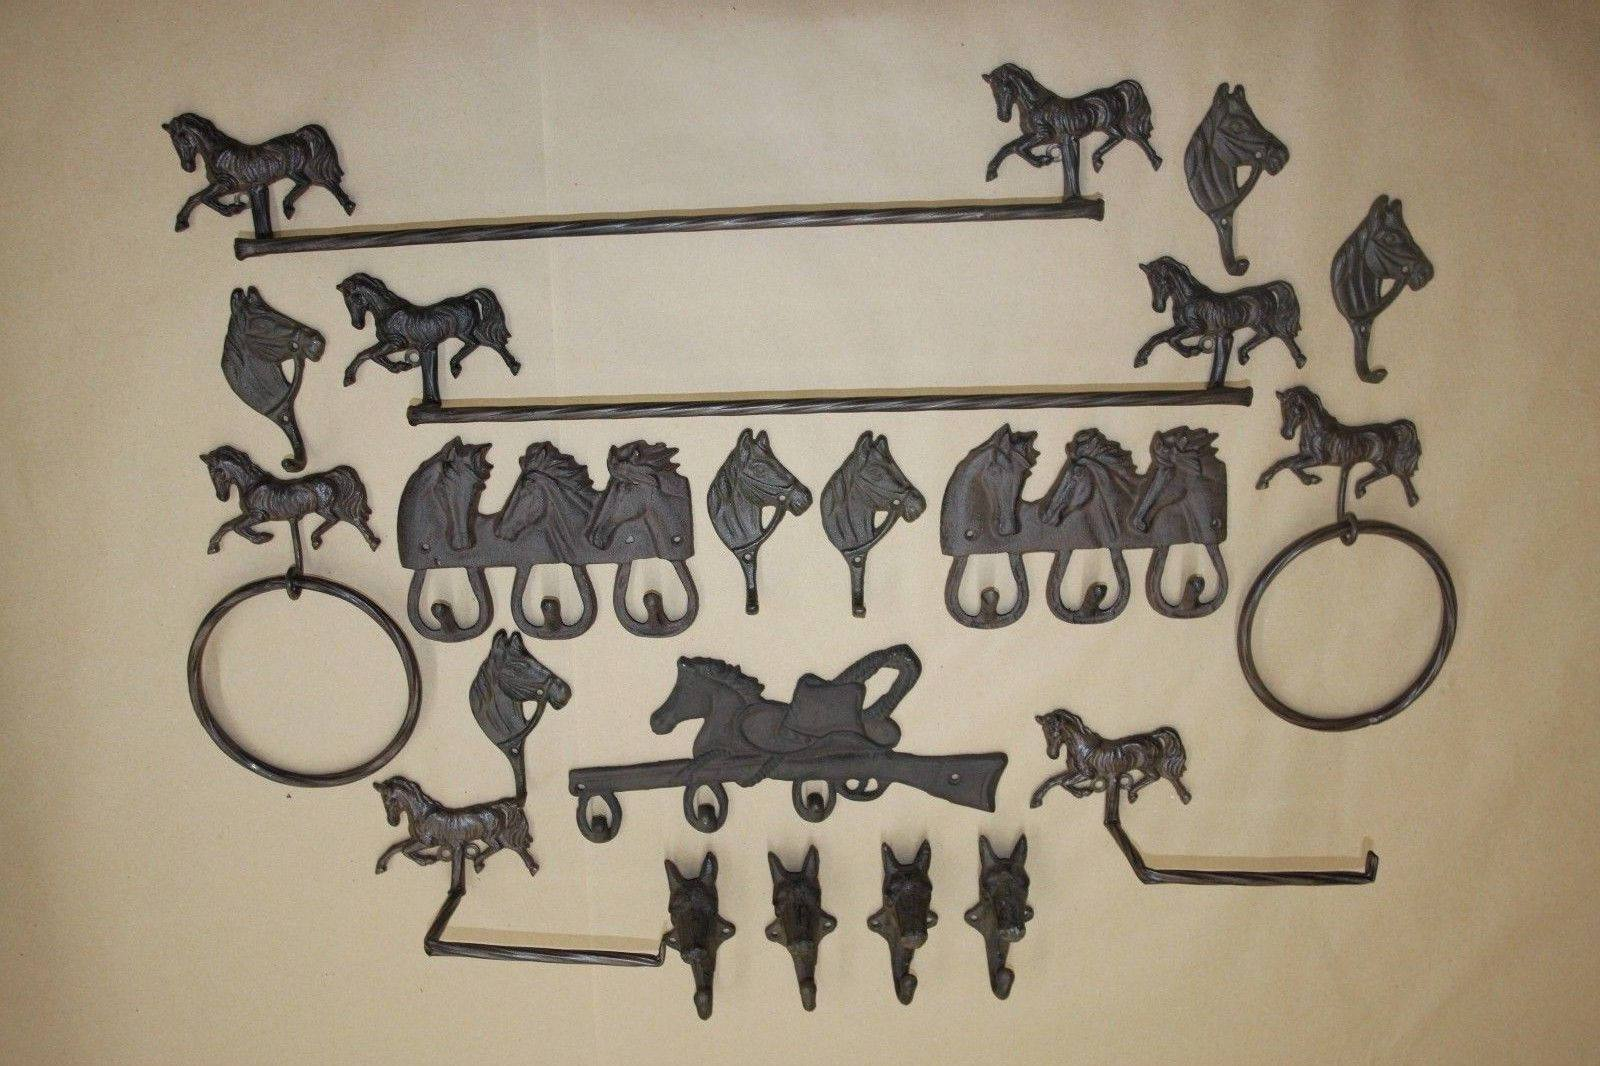 20) Georgetown Horse Theme Rustic Bath Accessories Collection, Cast Iron, 20 pieces, Free Ship